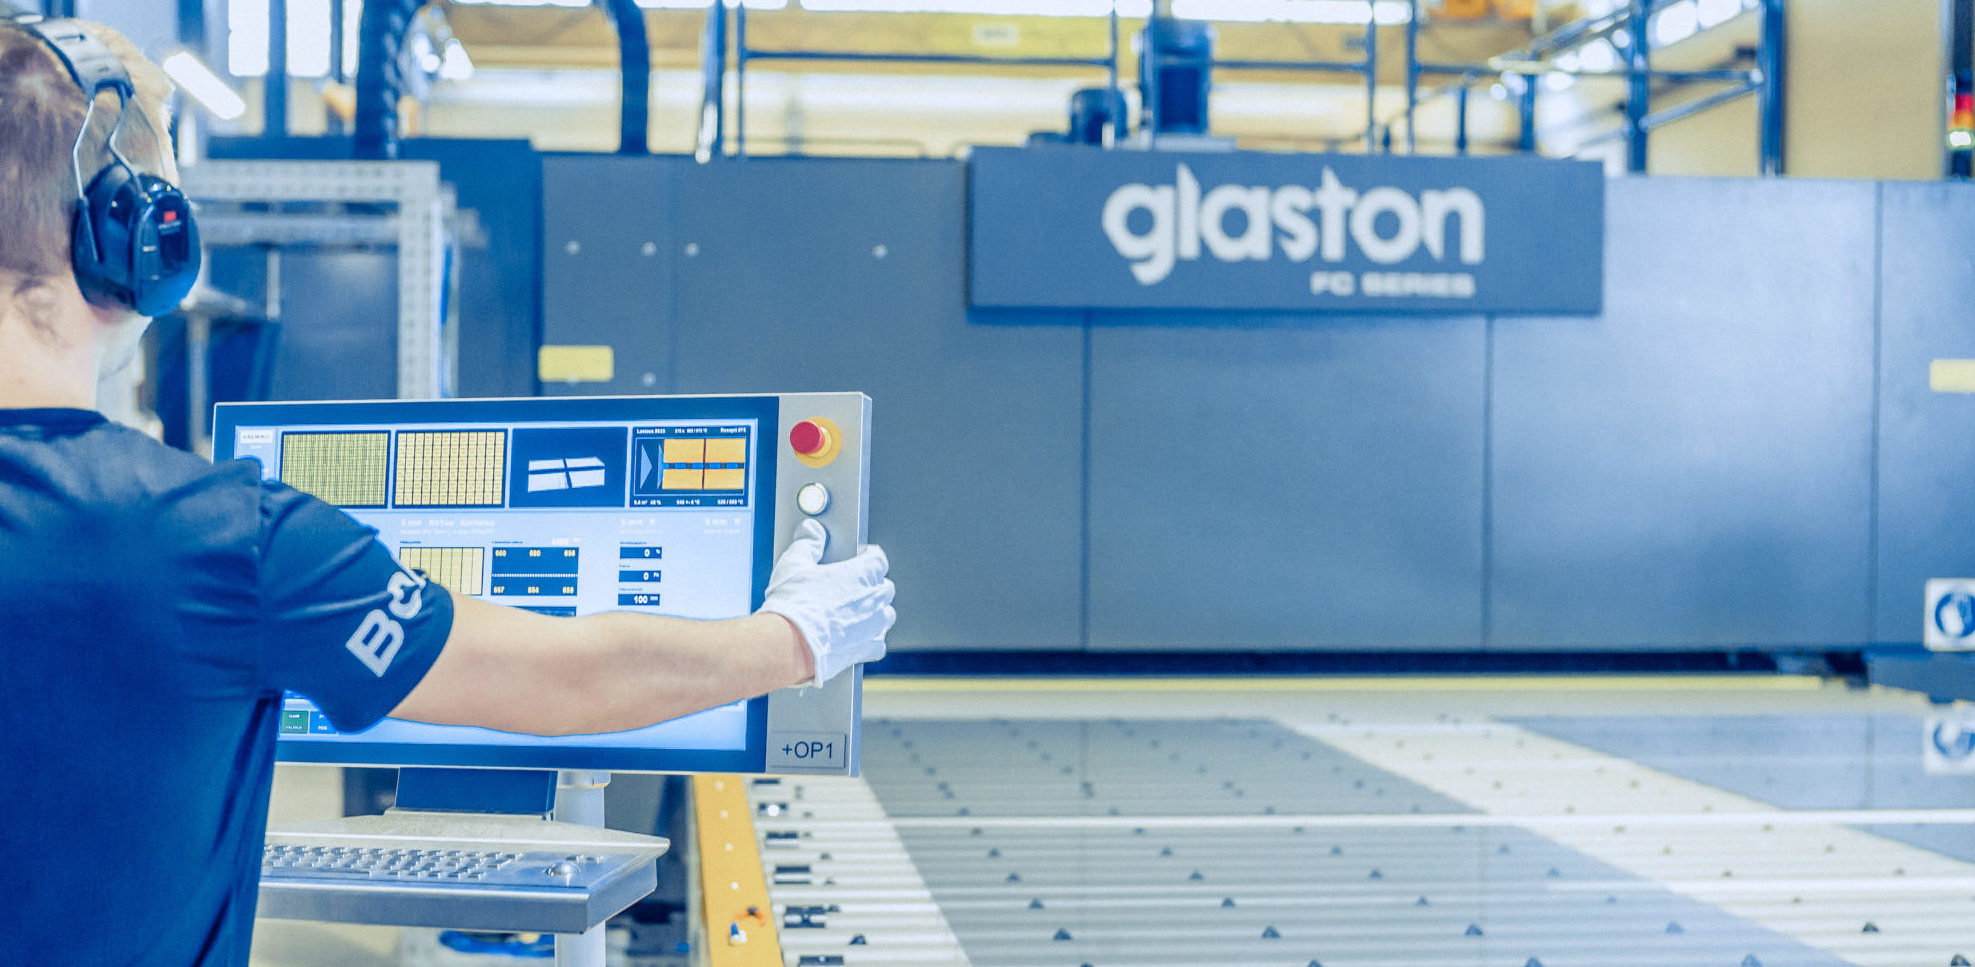 Glaston FC Series flat tempering line